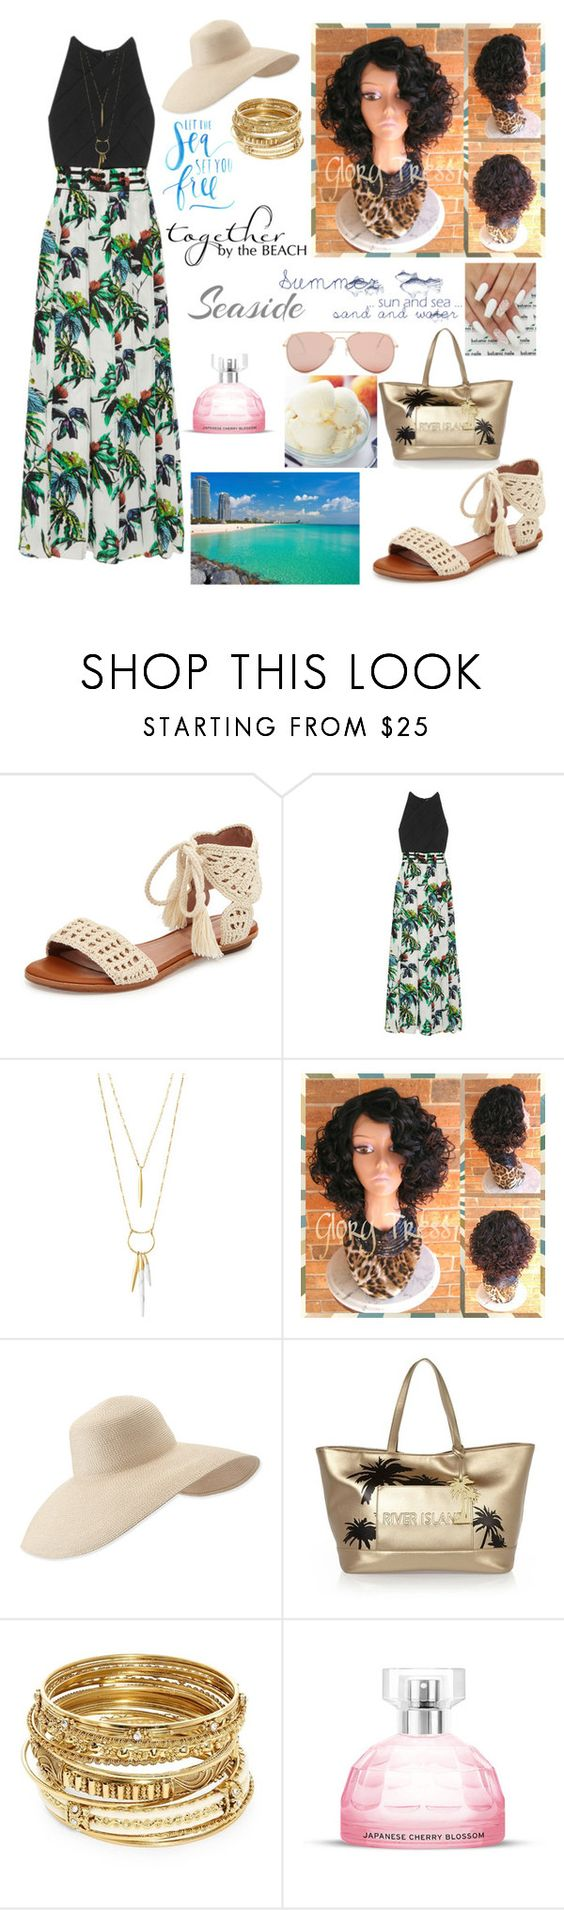 """""""Untitled #1126"""" by feb16 ❤ liked on Polyvore featuring Joie, Proenza Schouler, Stella & Dot, Eric Javits, River Island, ABS by Allen Schwartz and Betsey Johnson"""